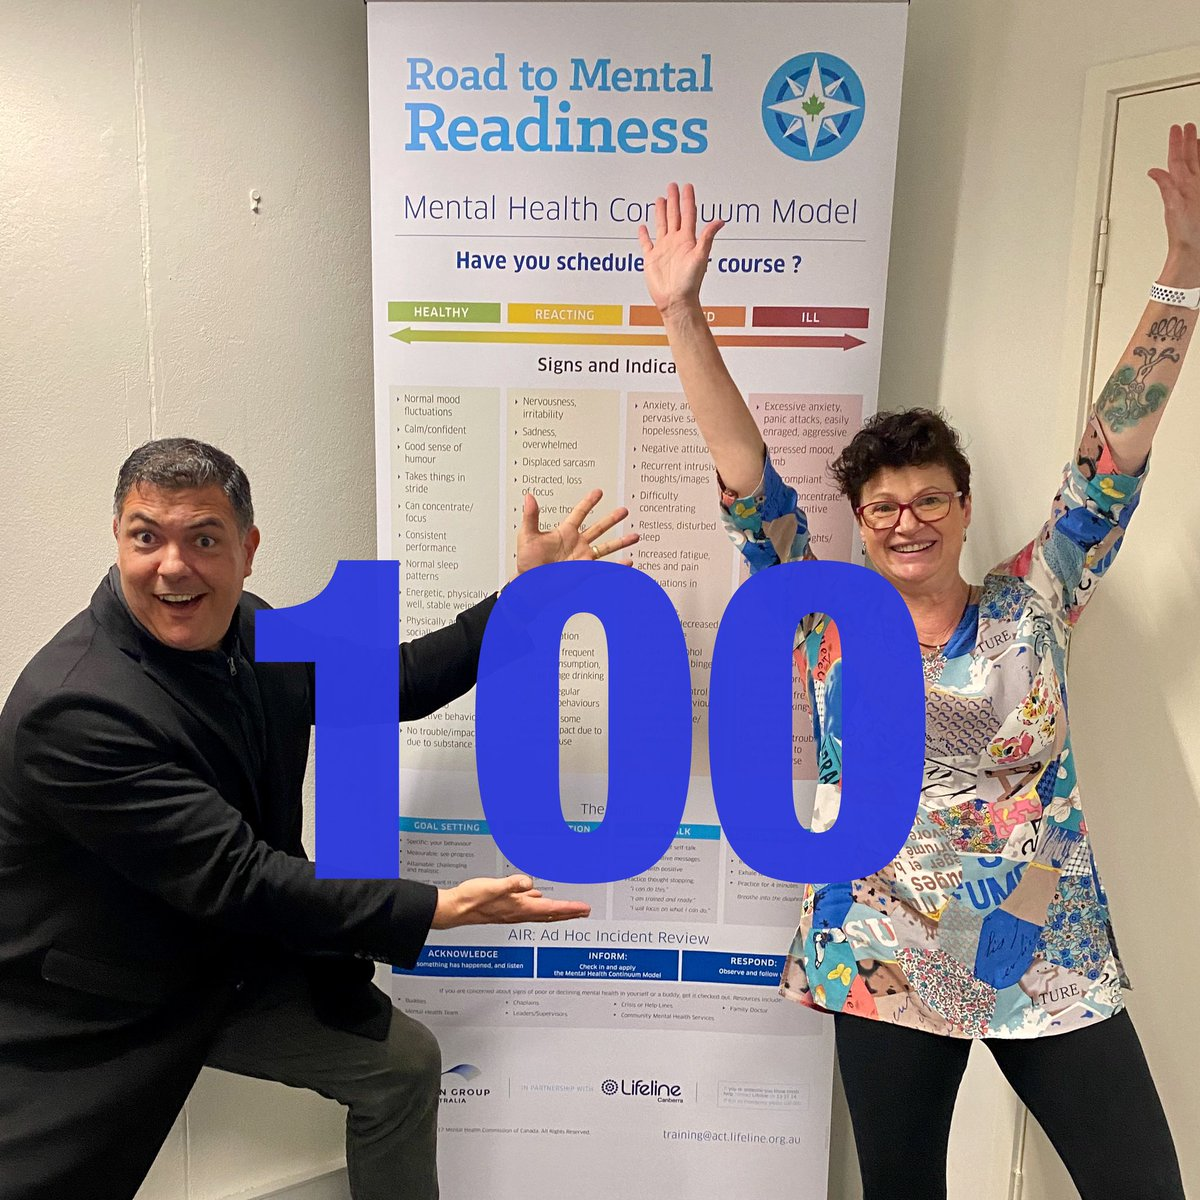 Congratulations Chrissy 🌟 for having delivered your 100th @Lifeline_ACT Road to Mental Readiness training session today. An outstanding program to help increase resilience and maintain mental health. Thank you 🙏 #mentalhealth #resilience #training https://t.co/yE9q2MS2Ba